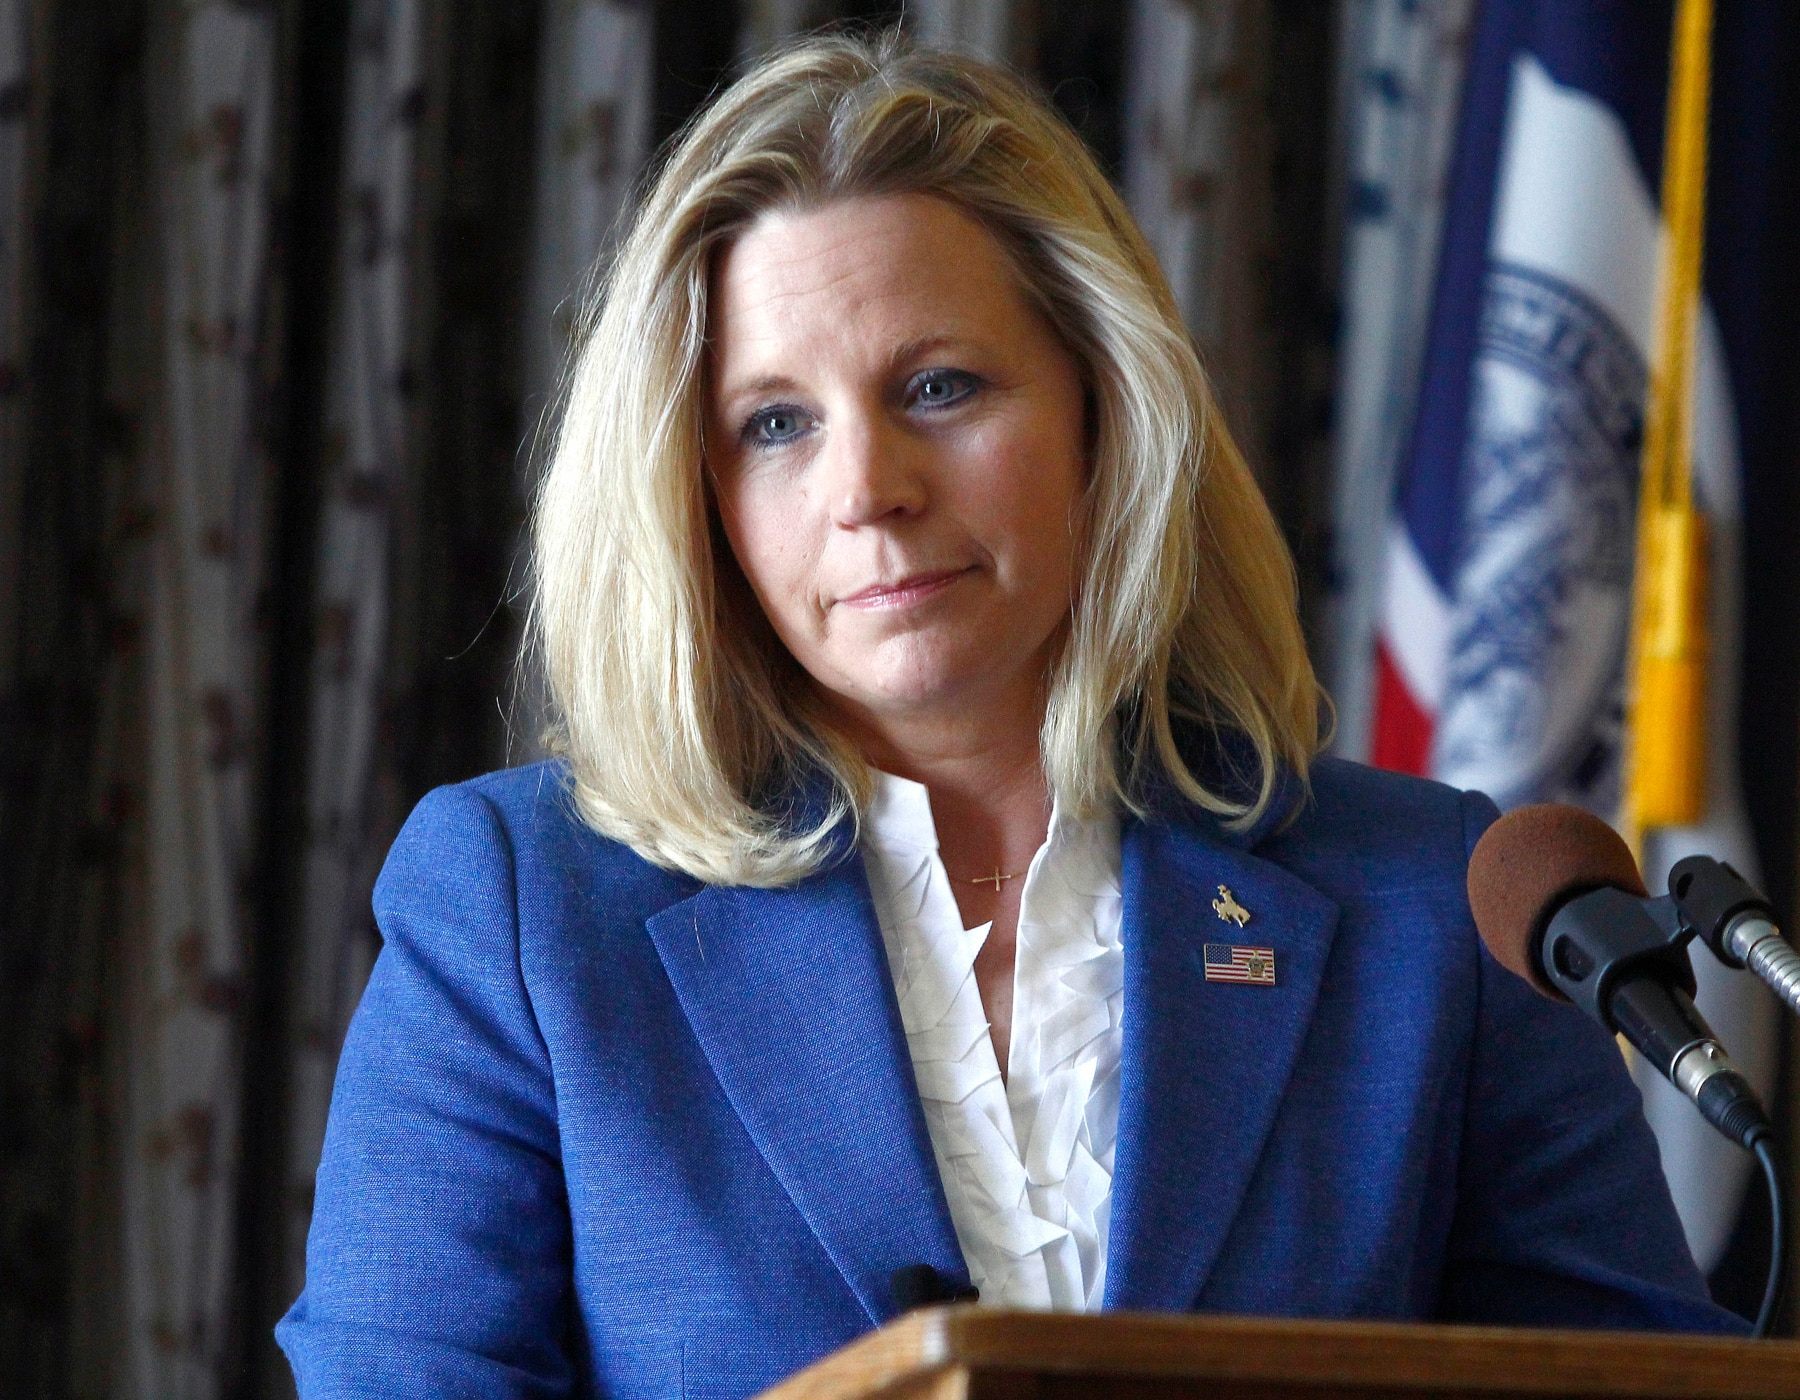 Liz Cheney at lectern (© AP Images)